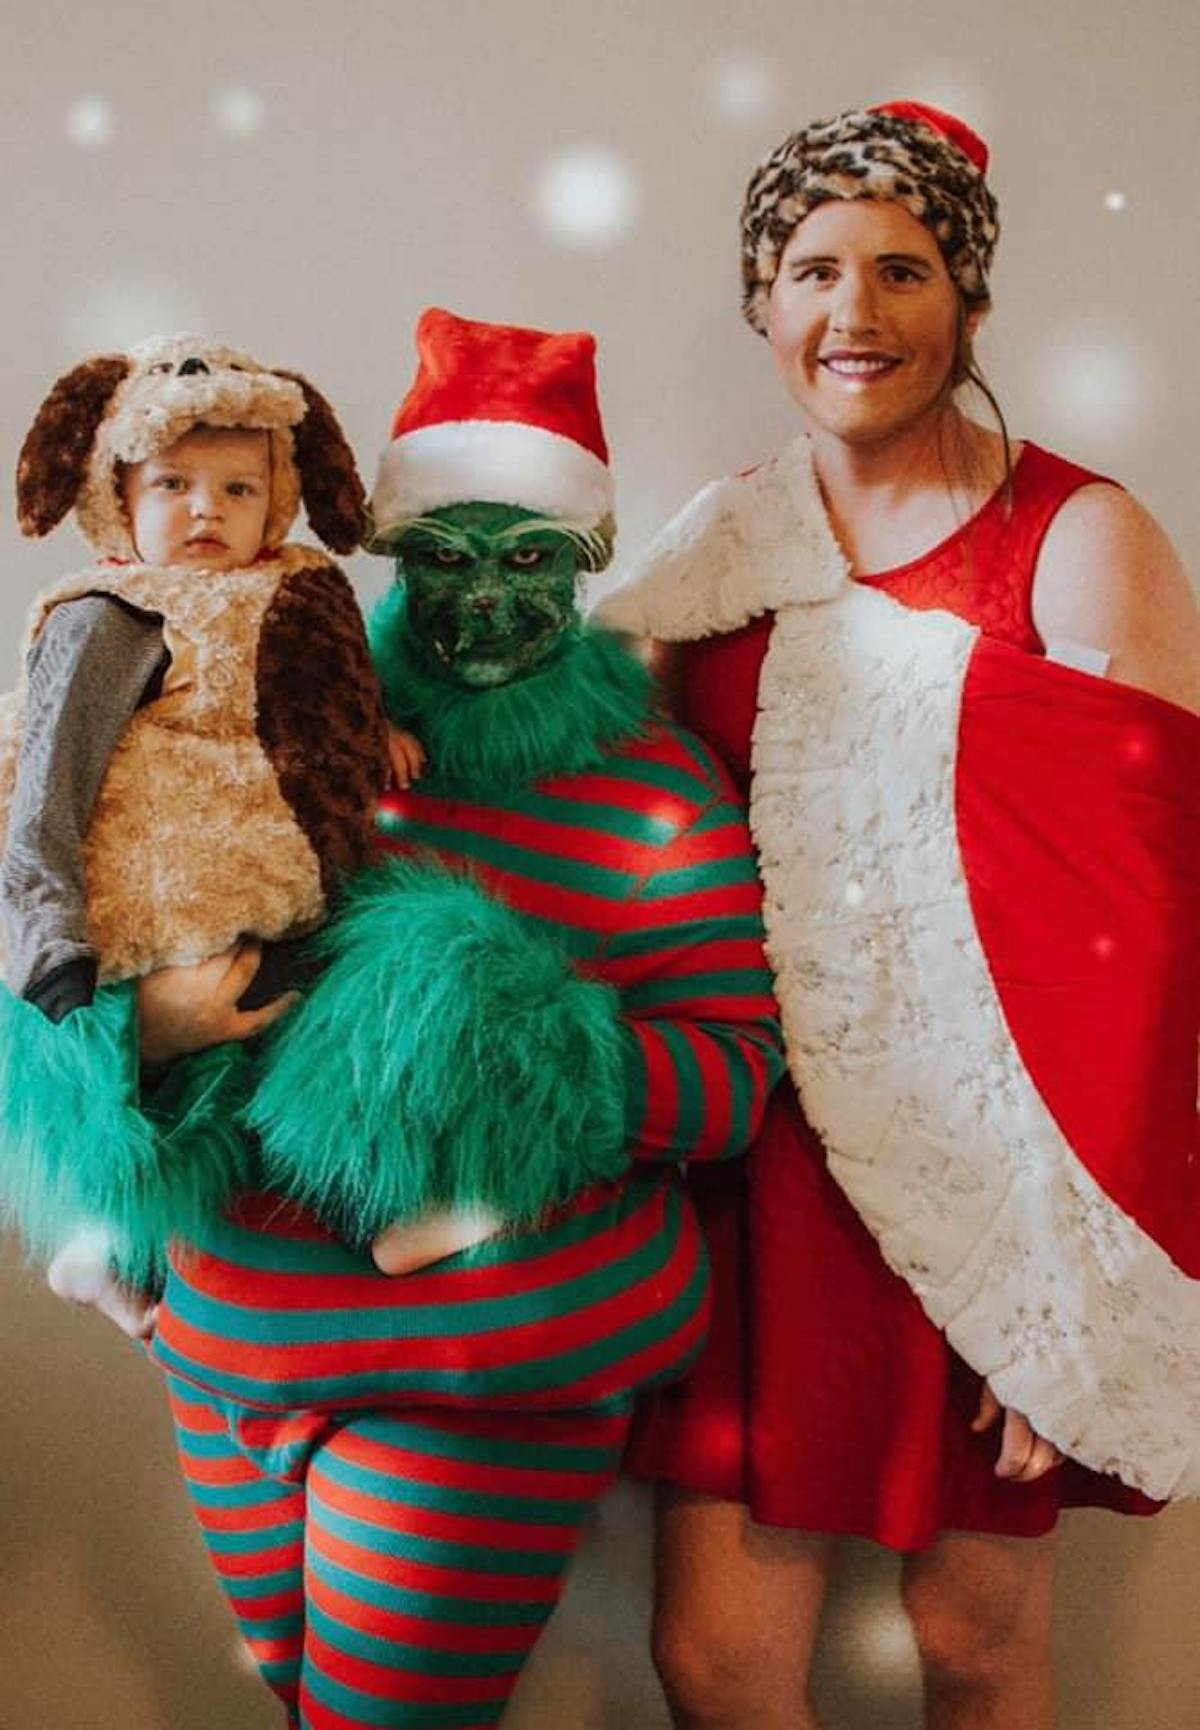 Family wearing character costumes from The Grinch smile for picture.